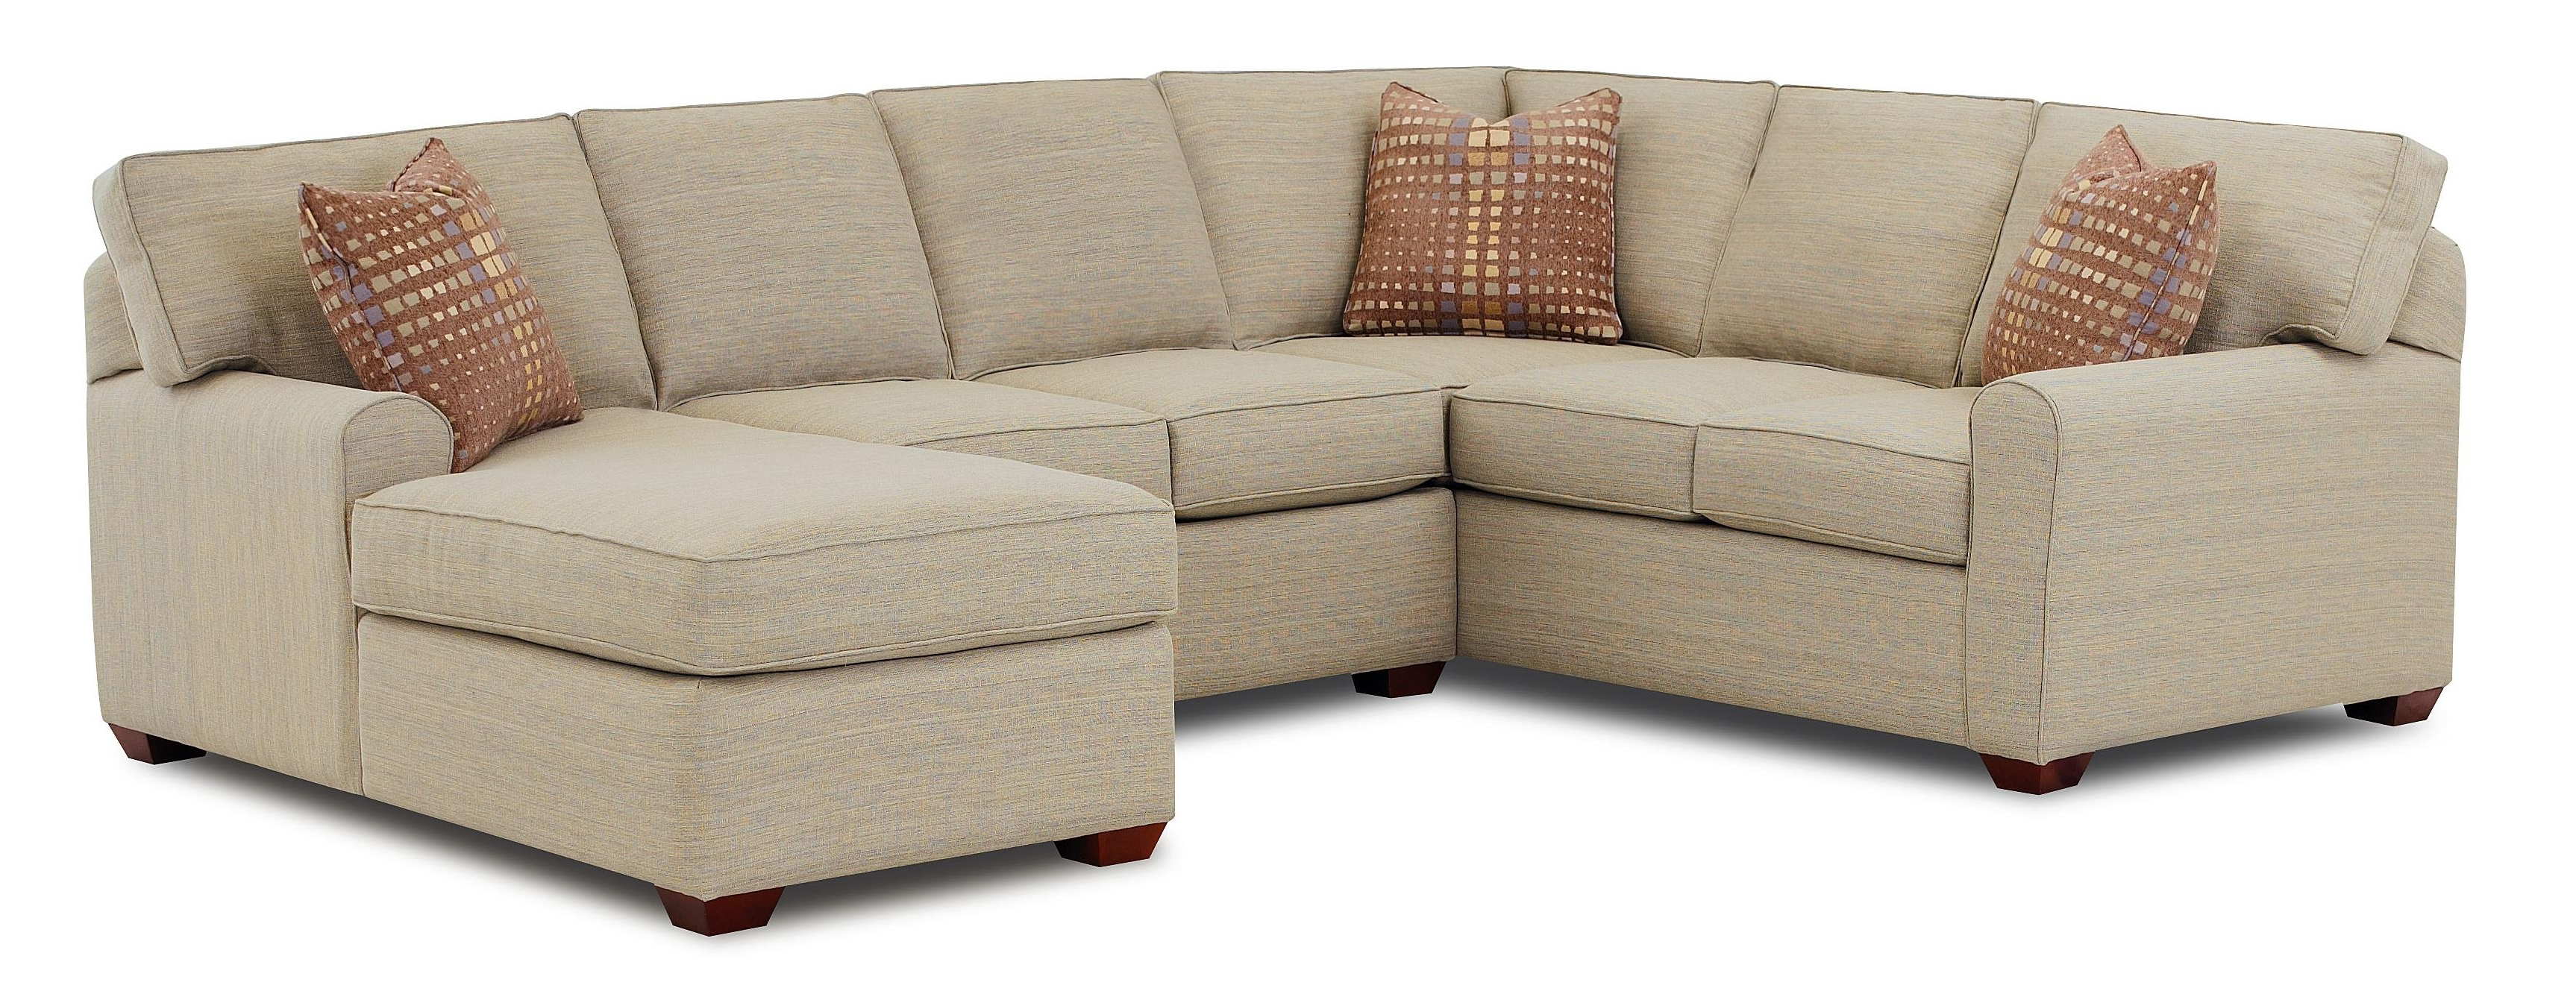 Lovely Chaise Lounge Couch 58 For Your Modern Sofa Inspiration Throughout Widely Used Couches With Chaise Lounge (View 5 of 15)